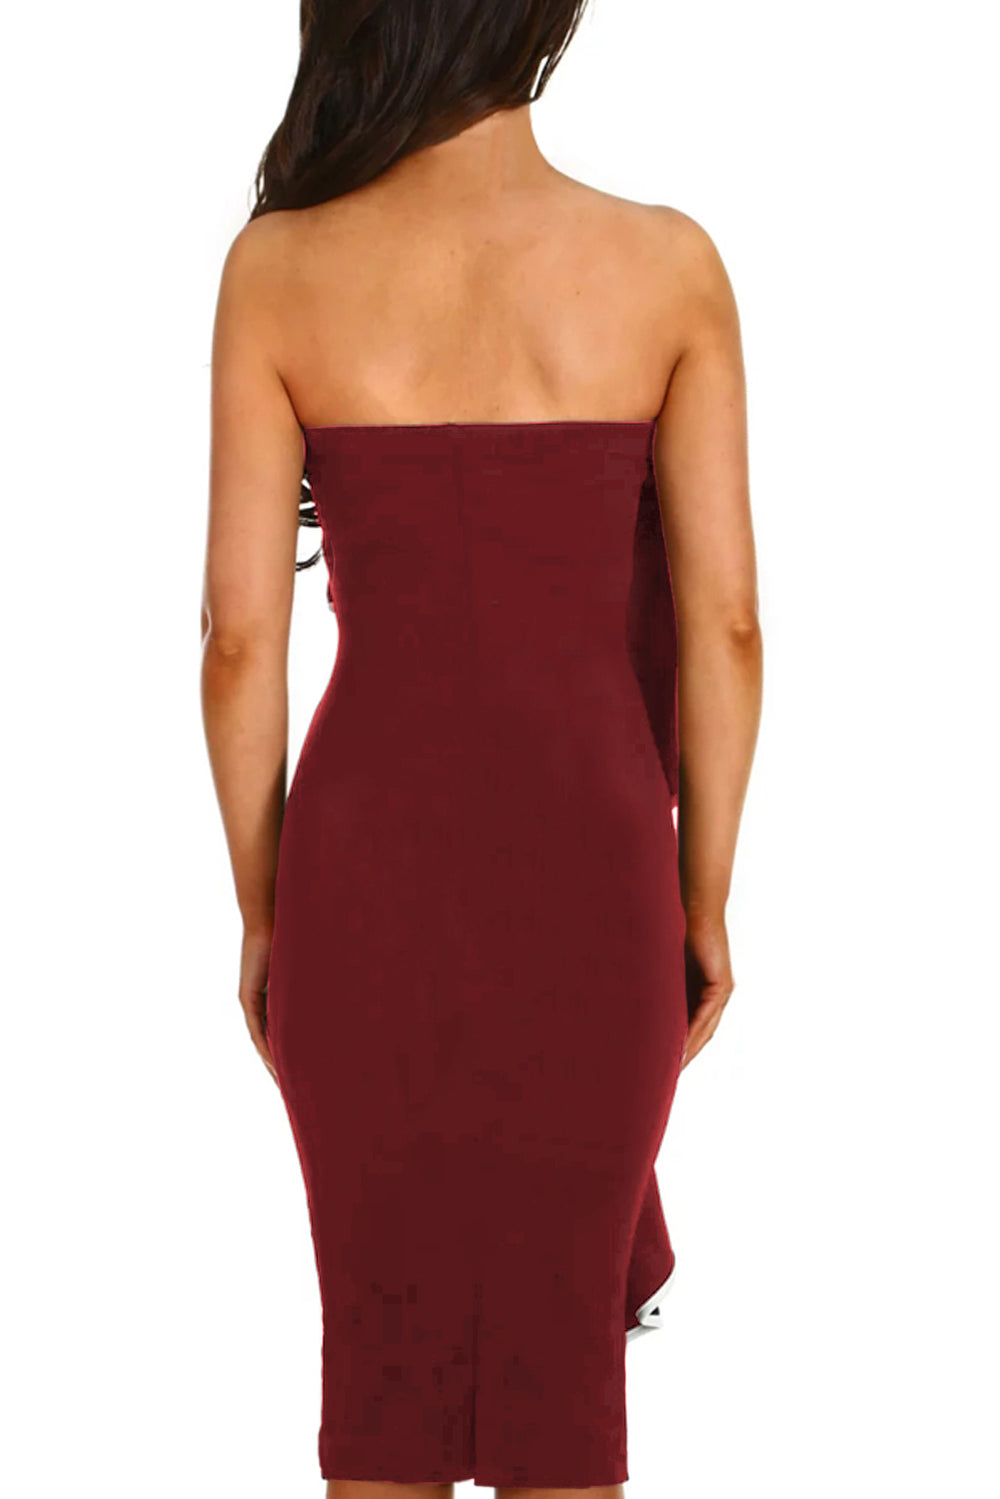 6ff7f7b40 Wine Frill Strapless Midi Dress – FabWoo